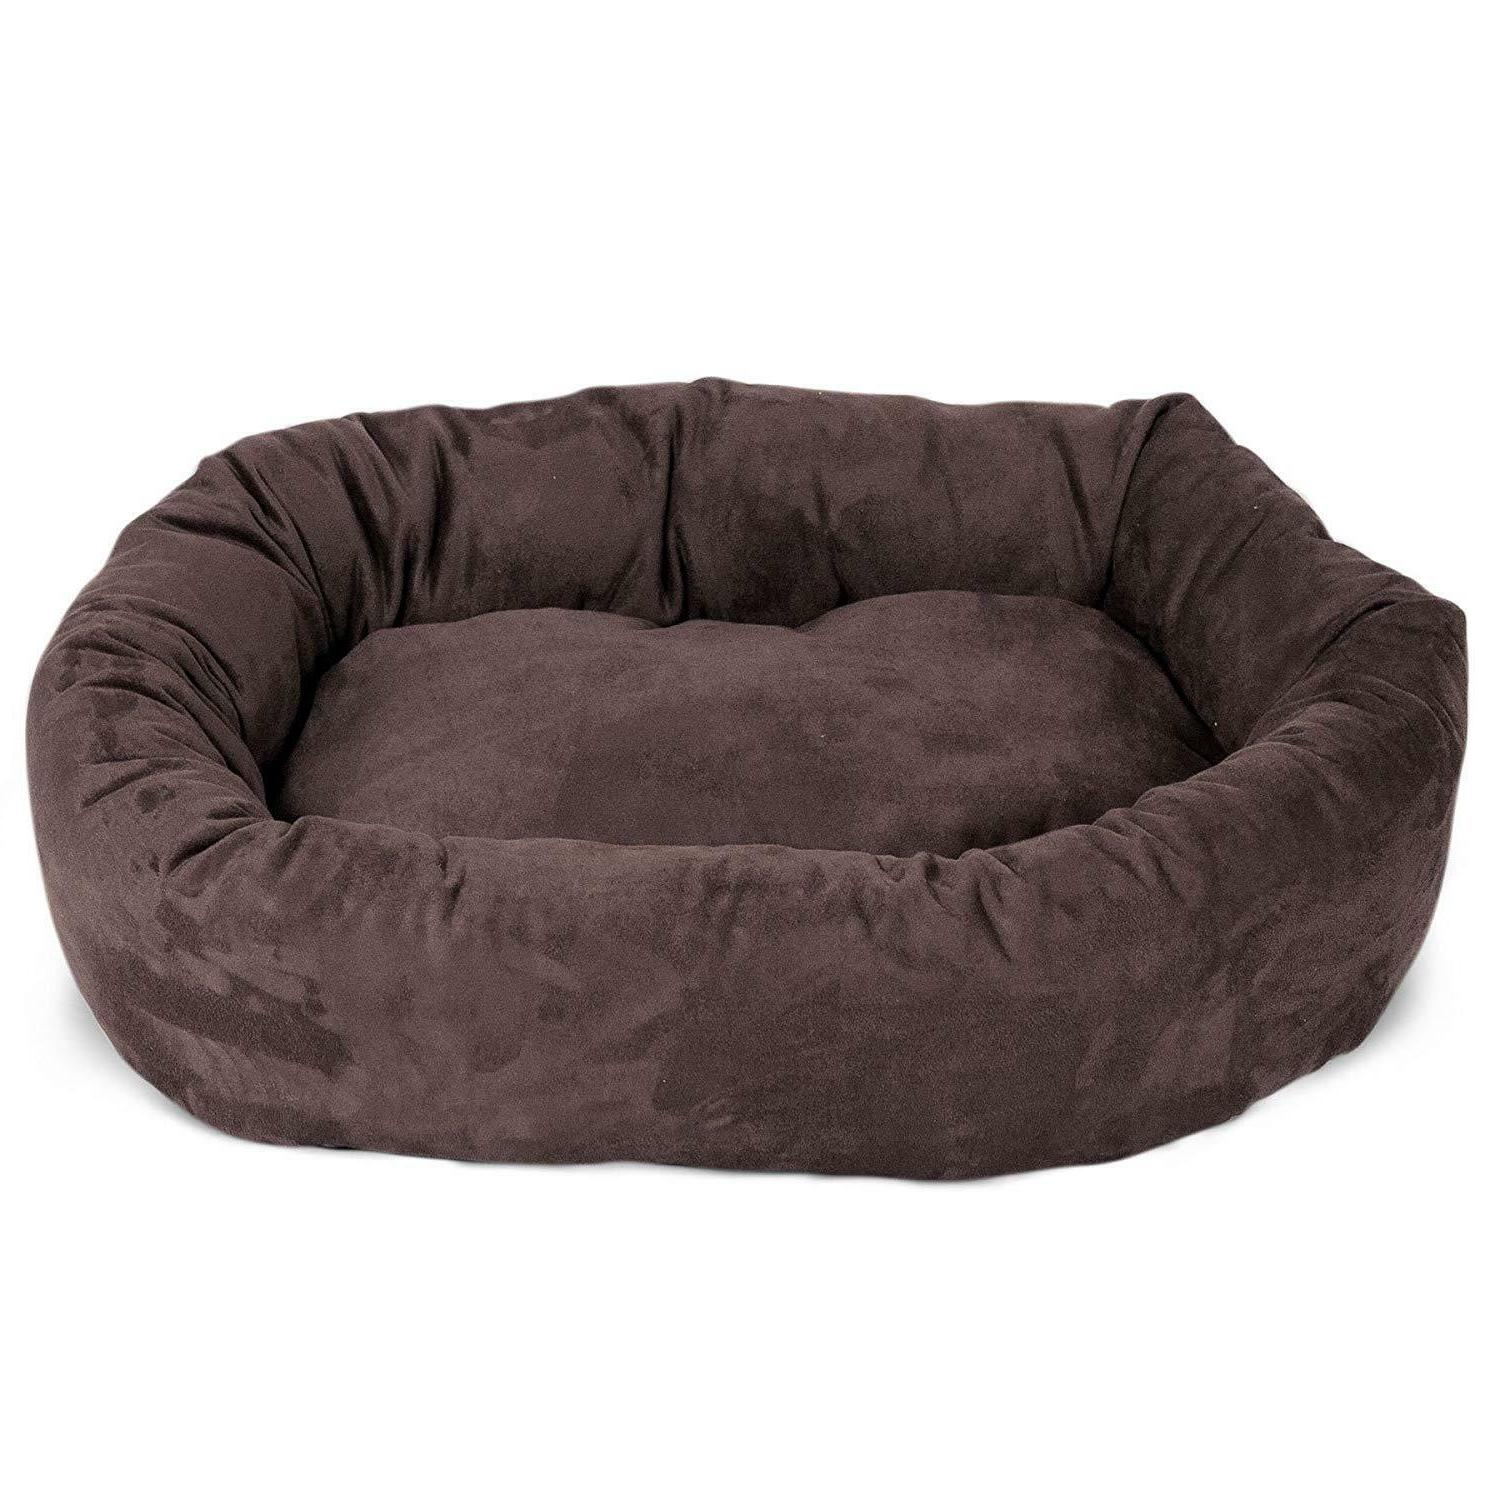 XL Bed Brown Pet Breed Suede 52""